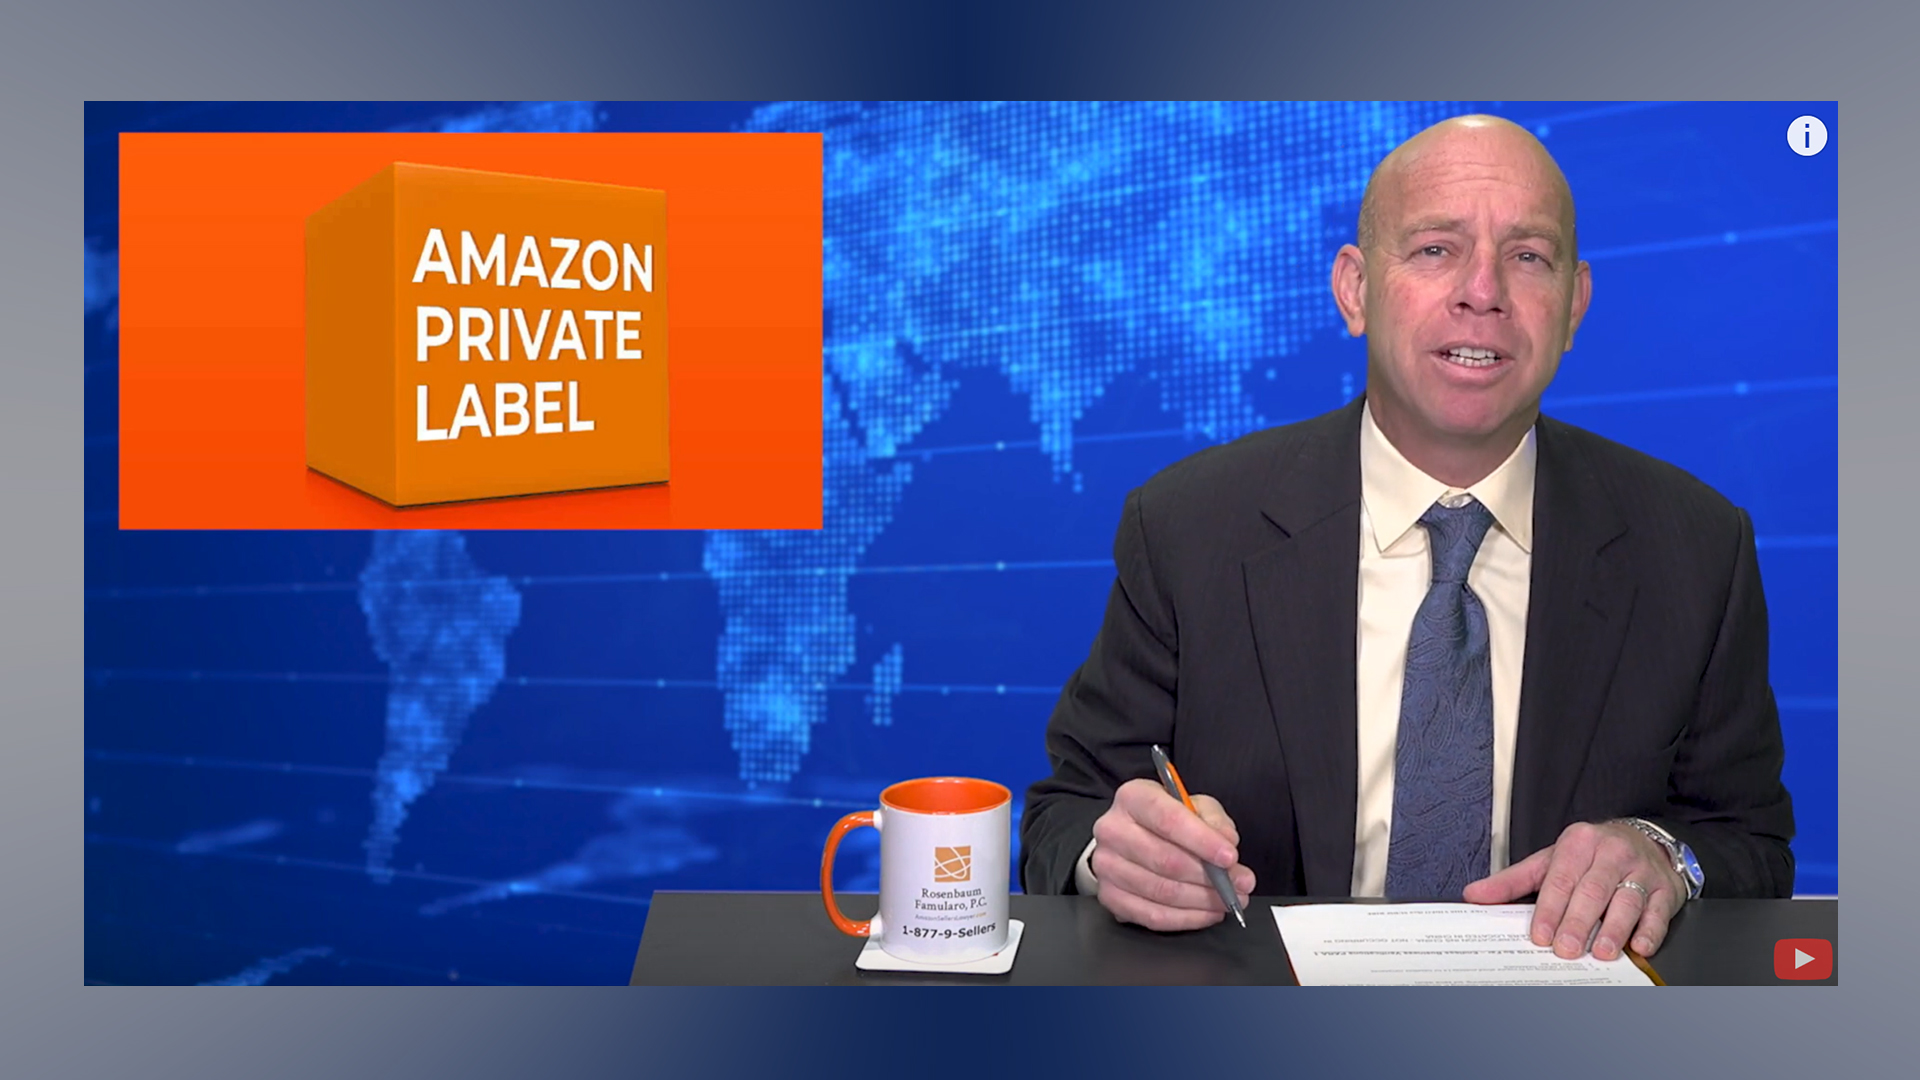 Amazon Seller ASIN Misuse, Sending POAs & Business Verification Not Occurring in China